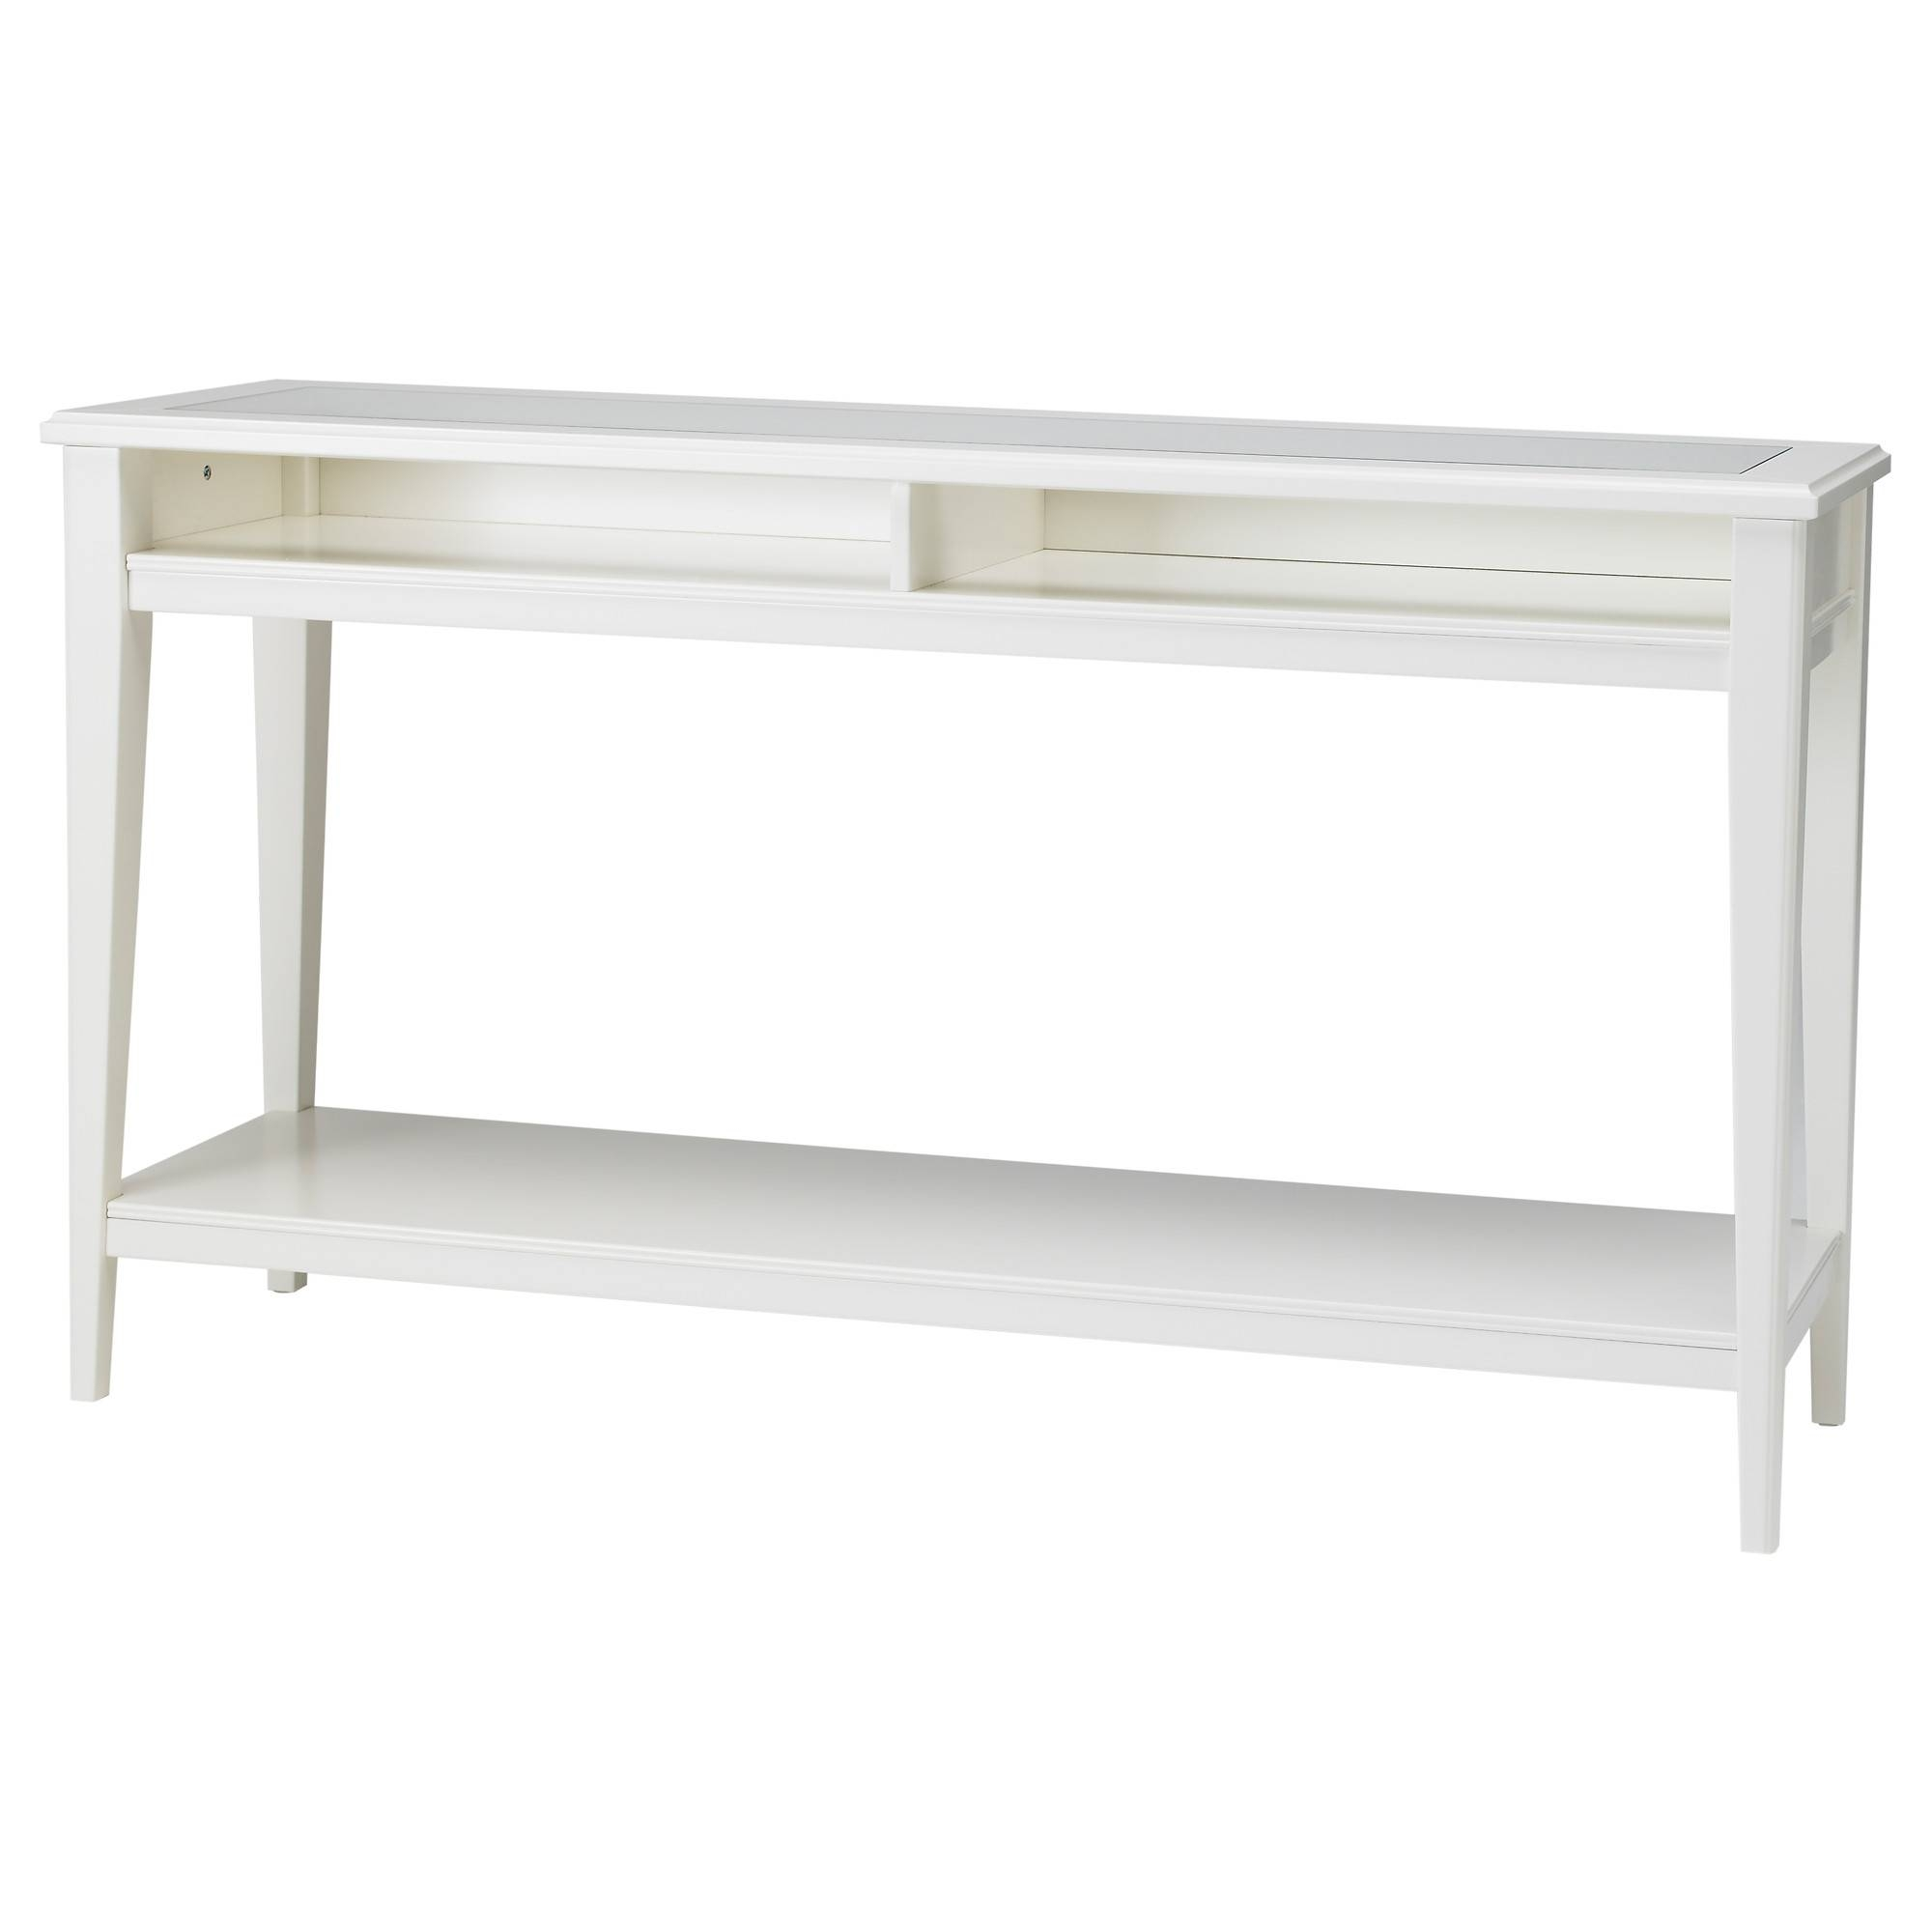 Liatorp Console Table White/glass 133X37 Cm - Ikea inside White Glass Sideboards (Image 14 of 30)